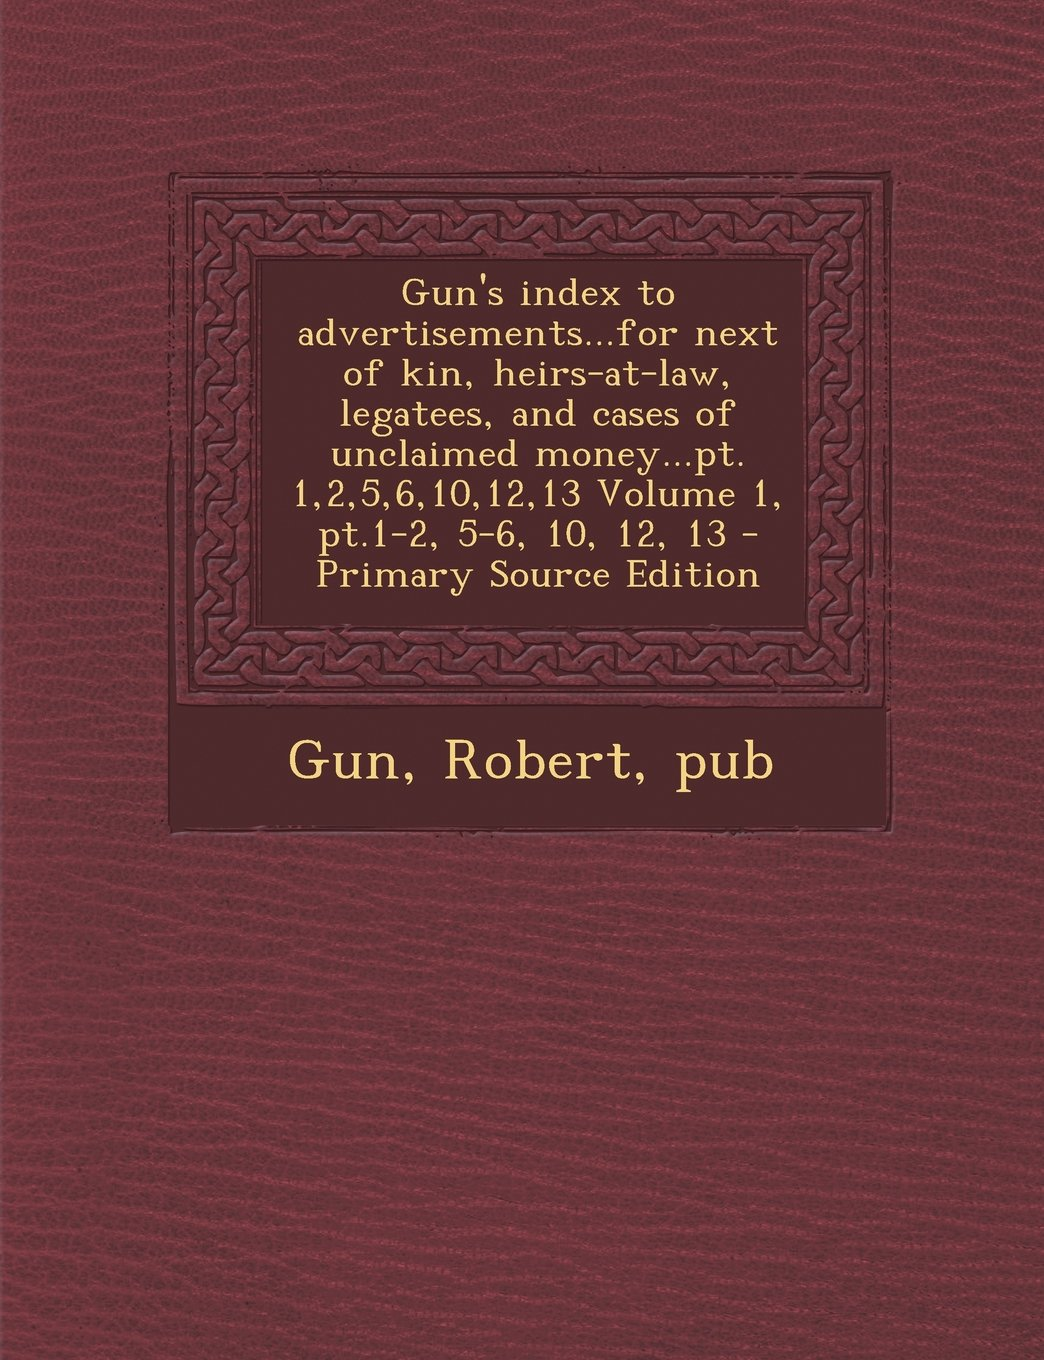 Read Online Gun's index to advertisements...for next of kin, heirs-at-law, legatees, and cases of unclaimed money...pt. 1,2,5,6,10,12,13 Volume 1, pt.1-2, 5-6, 10, 12, 13 pdf